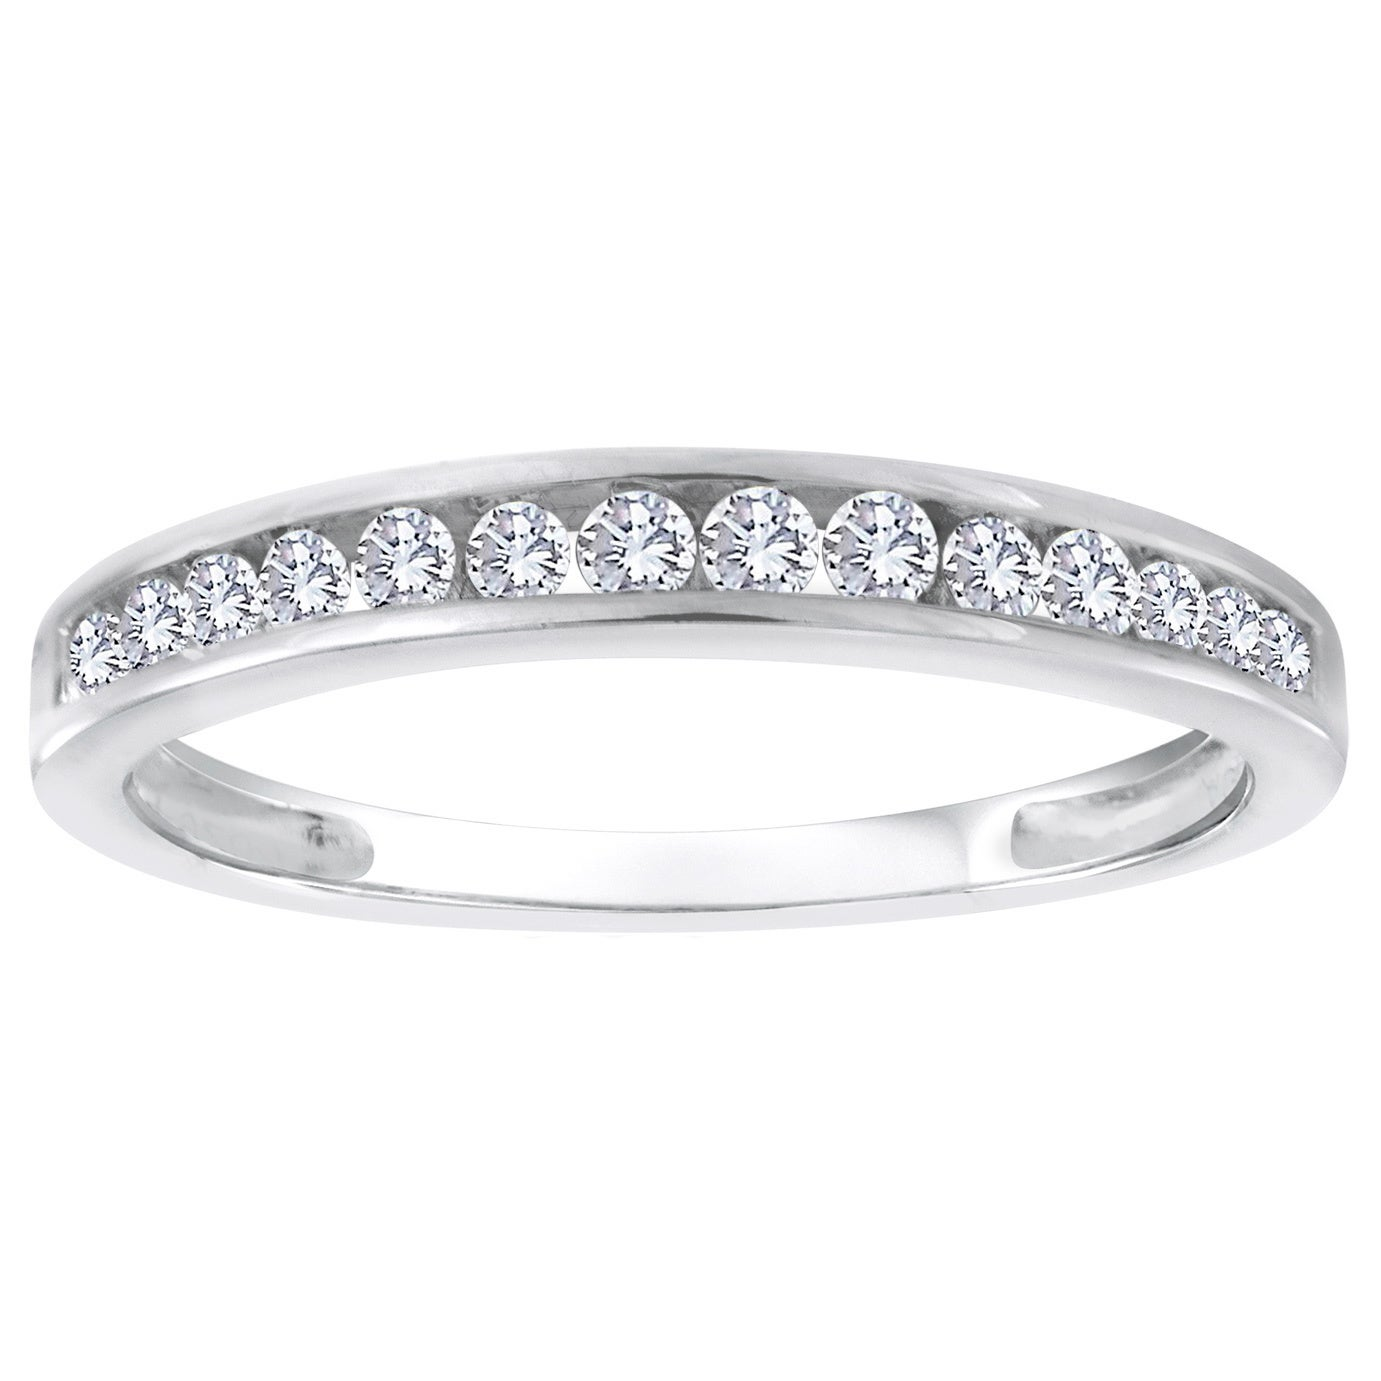 Diamond Wedding Band in 10K Pink Gold 1//6 cttw, Size-10.5 G-H,I2-I3